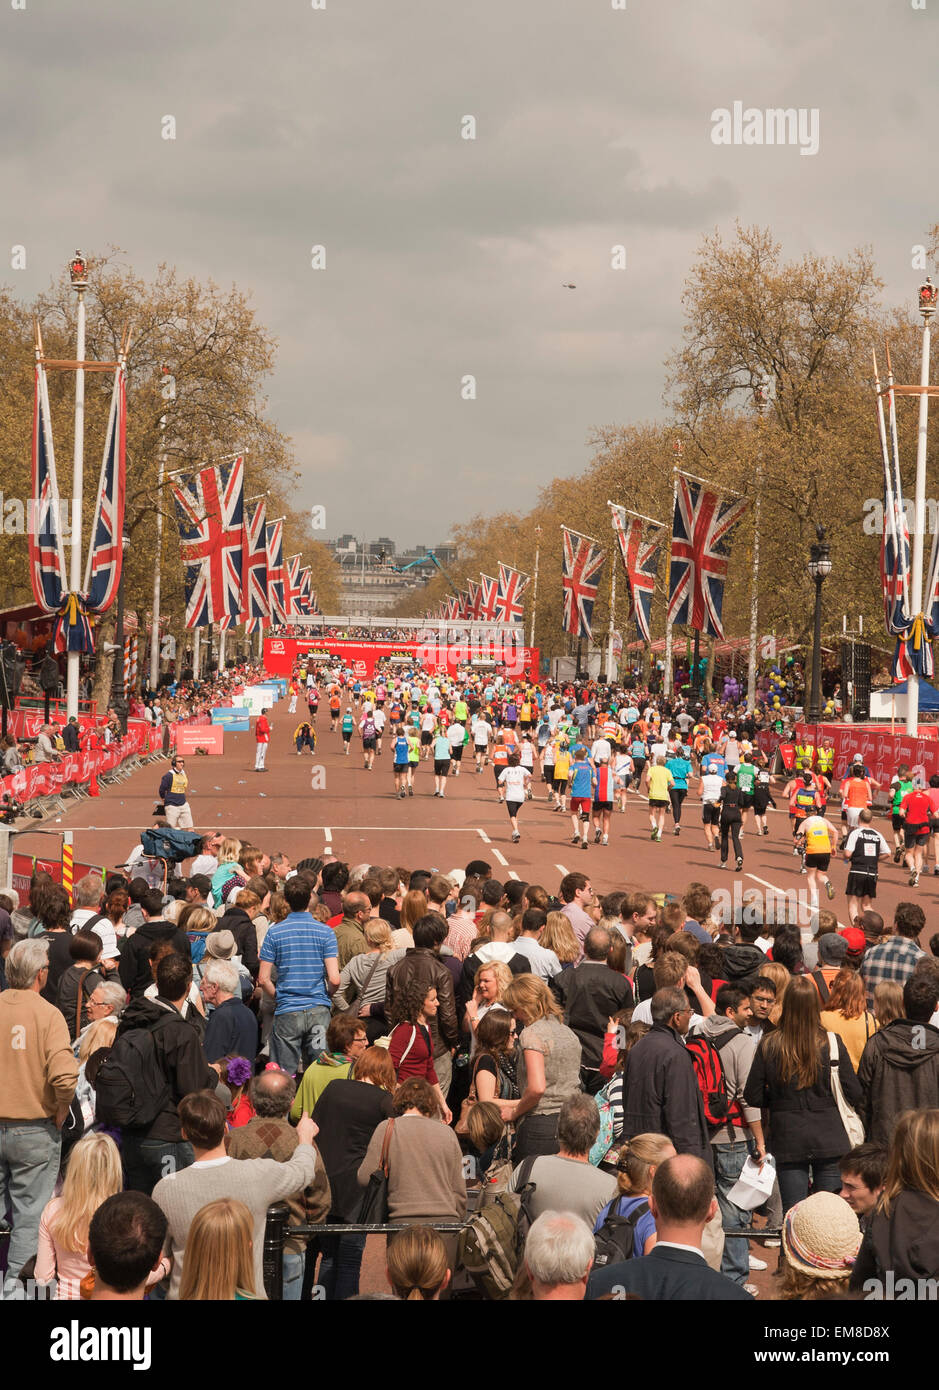 Marathon runners approach the finish line on Birdcage Walk during the London Marathon. - Stock Image